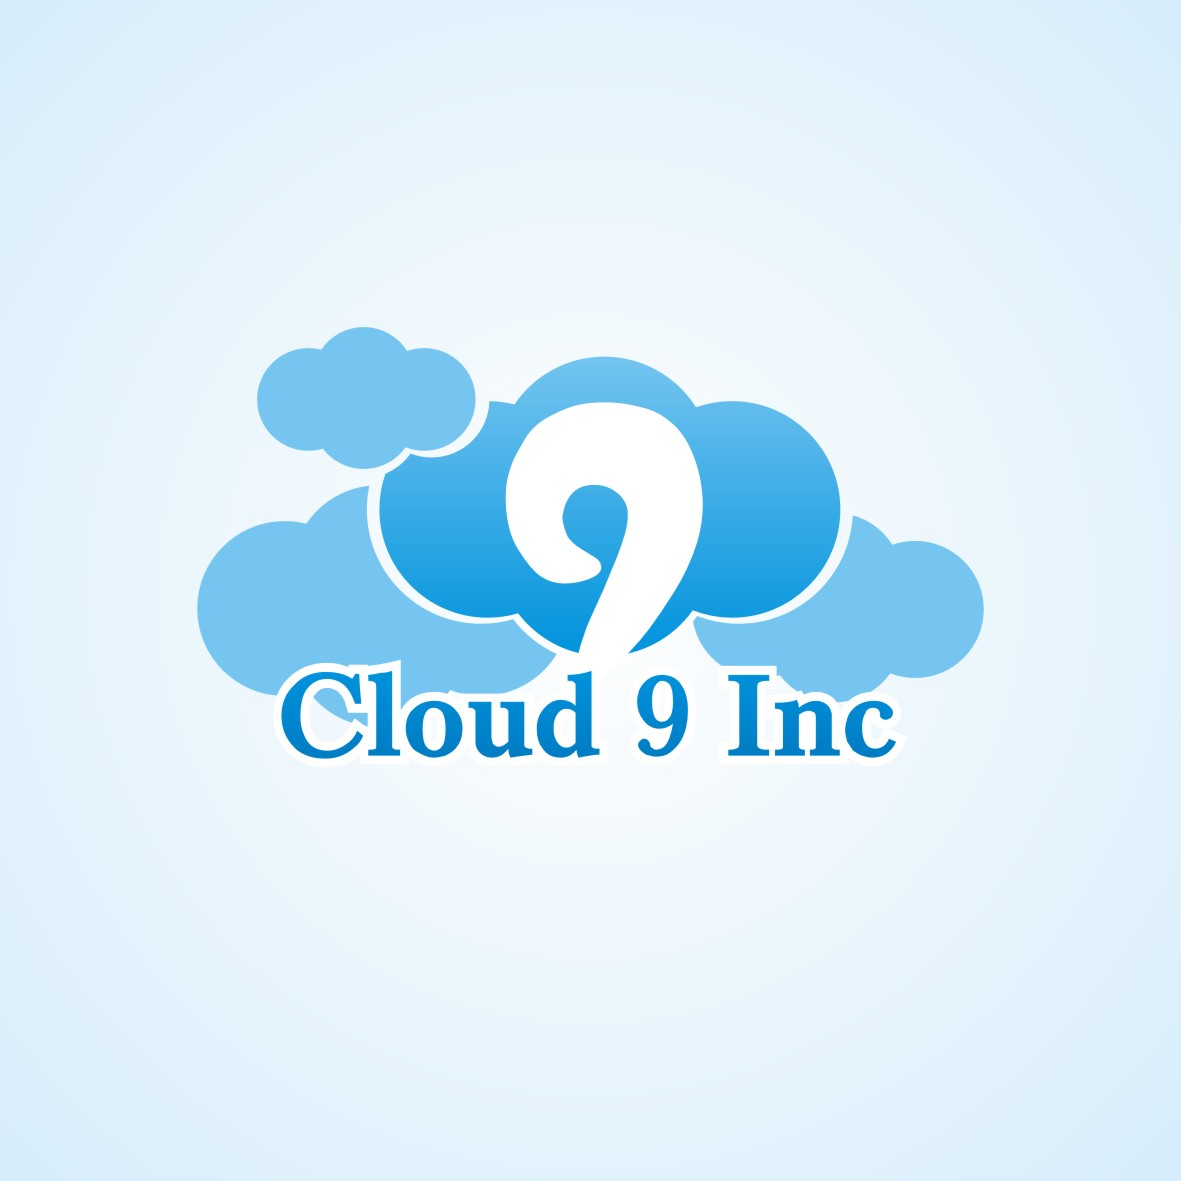 Logo Design by arteo_design - Entry No. 26 in the Logo Design Contest Unique Logo Design Wanted for Cloud 9 Inc.